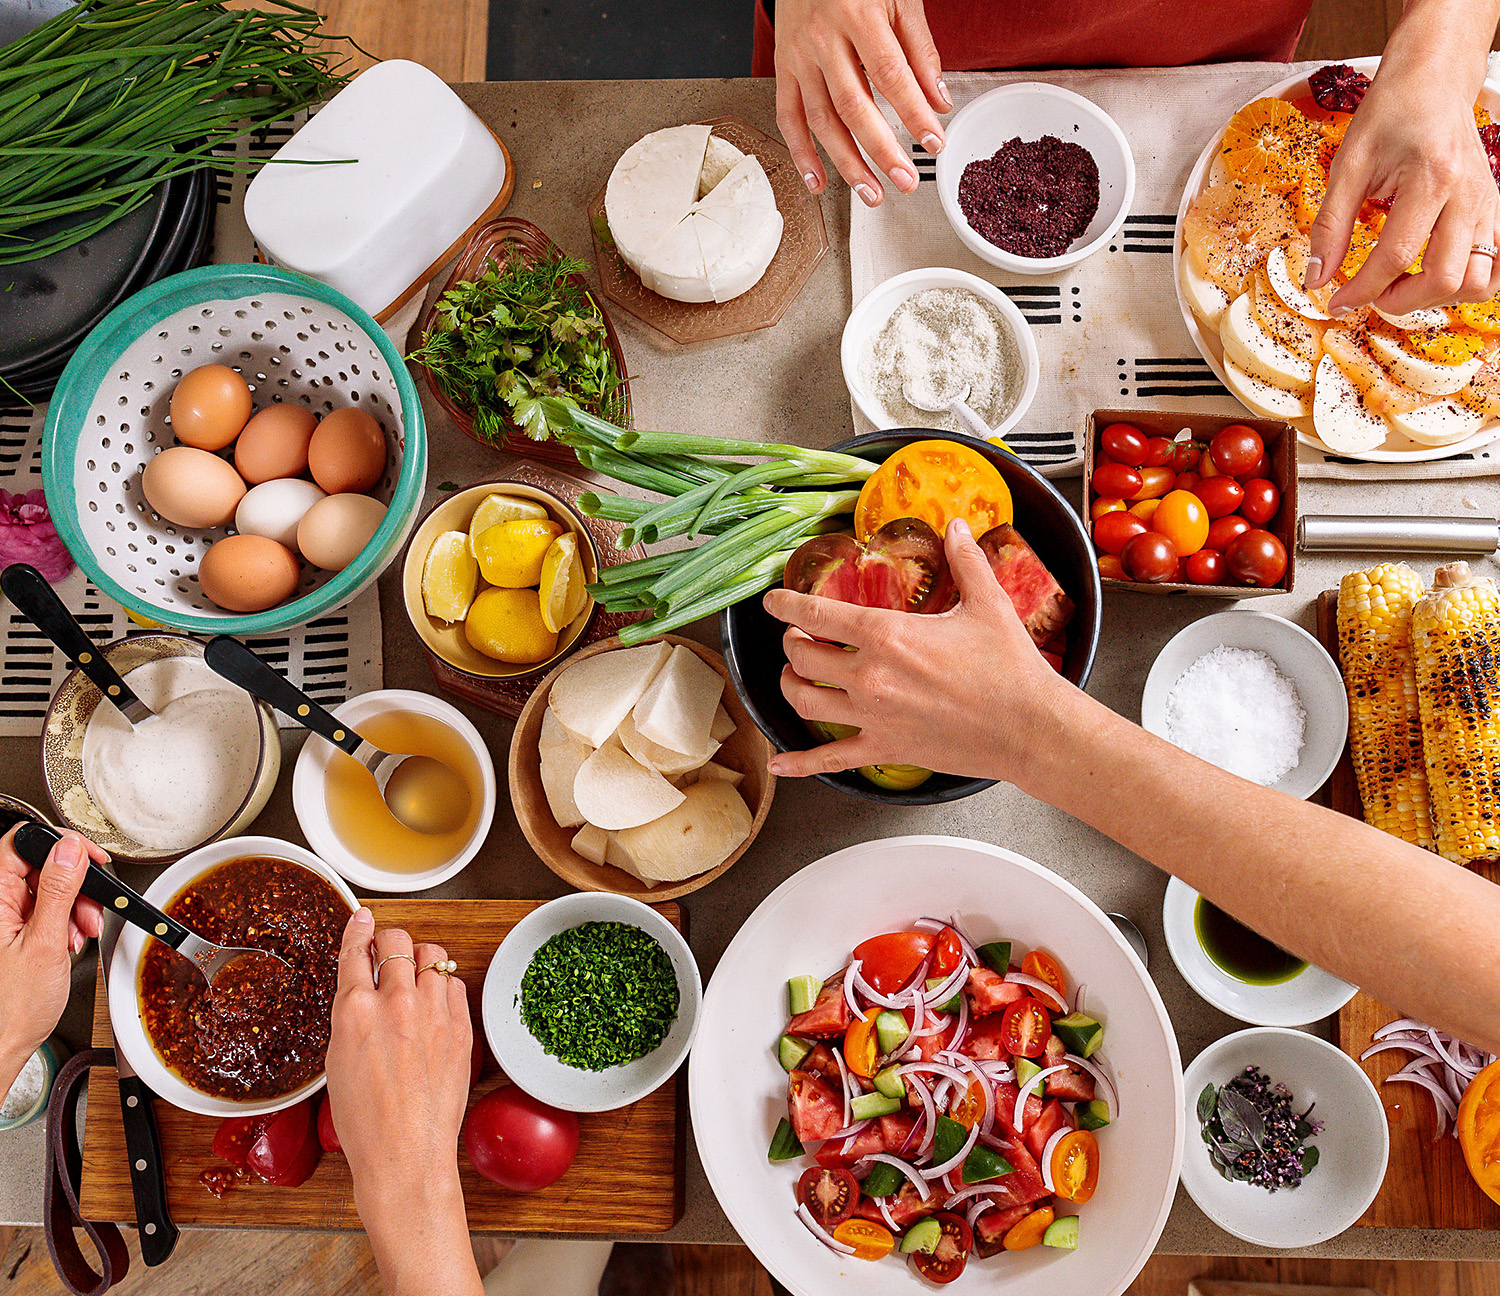 Ariel view of food on table